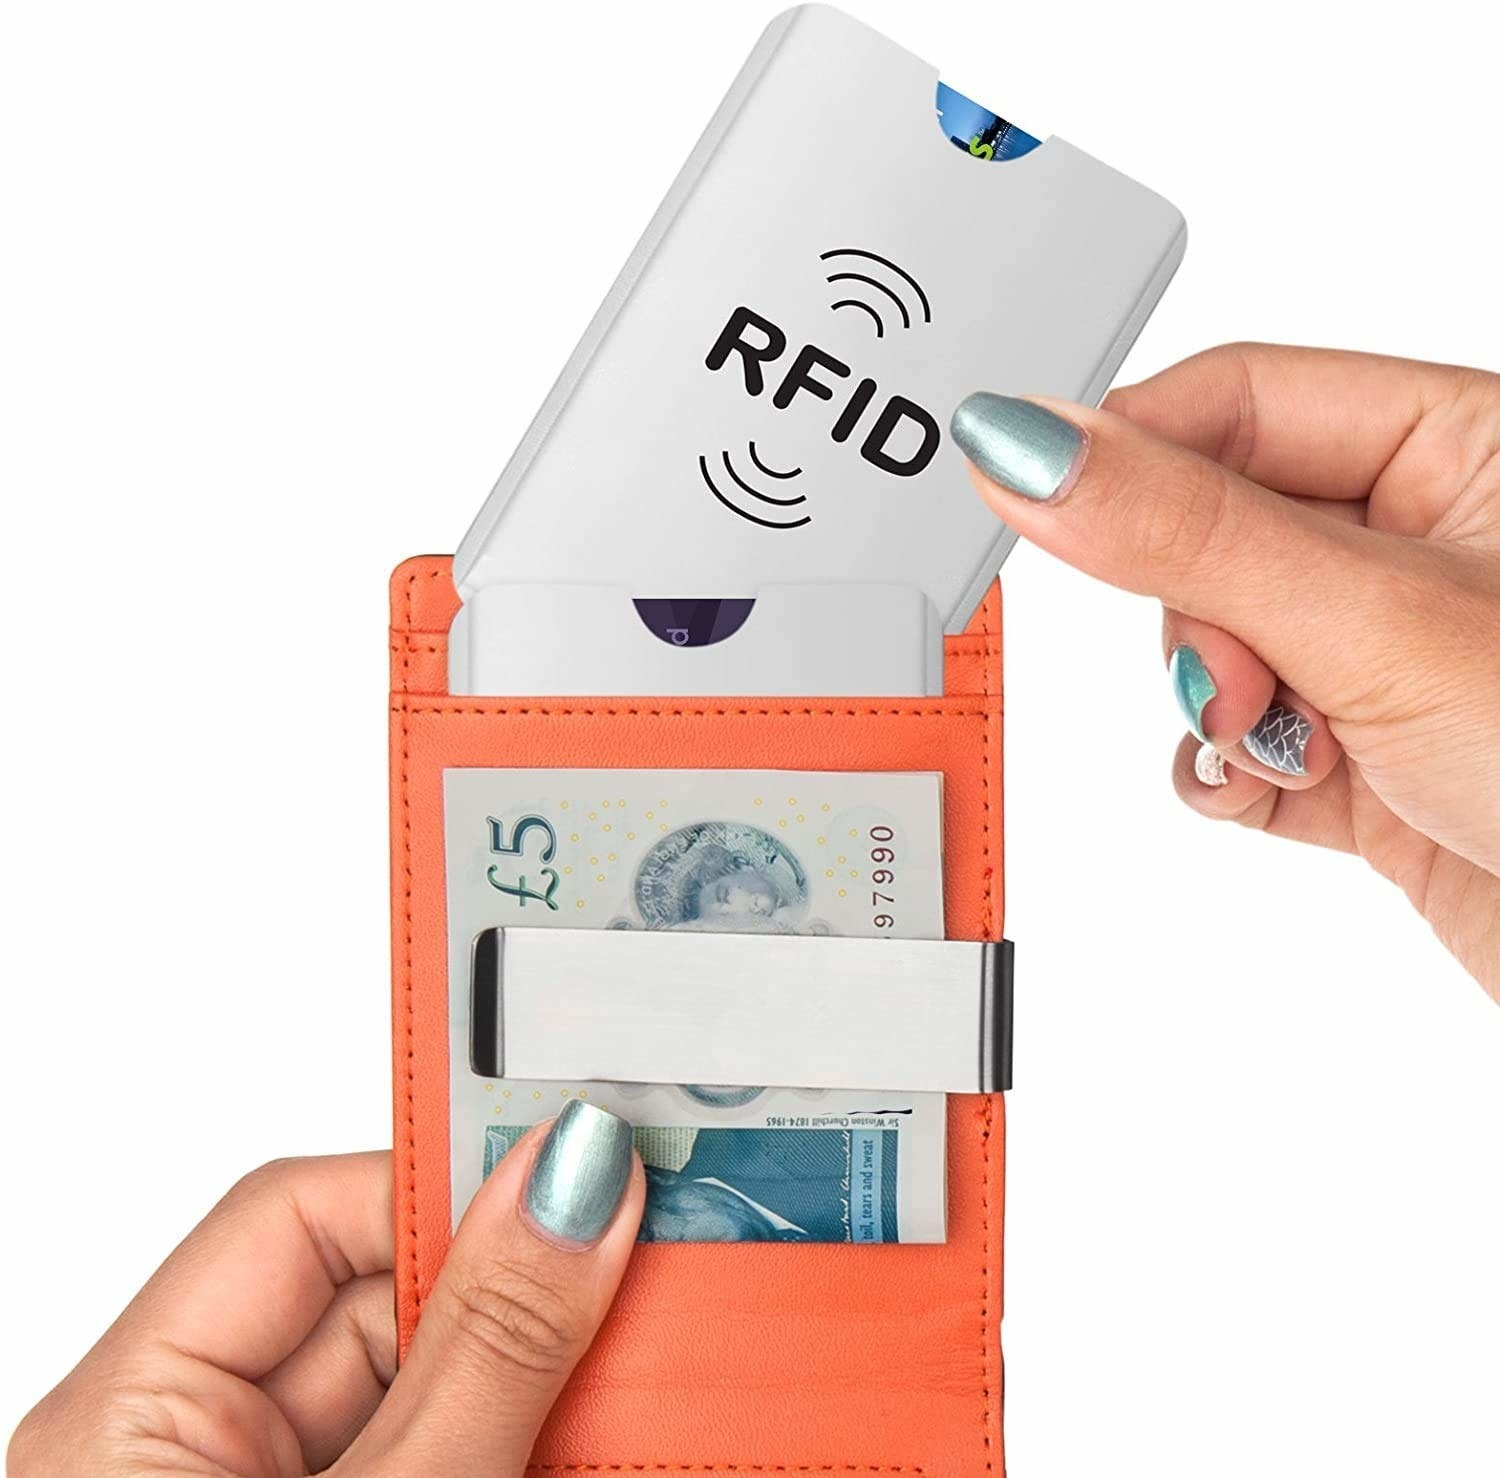 RFID cards kept in a wallet.